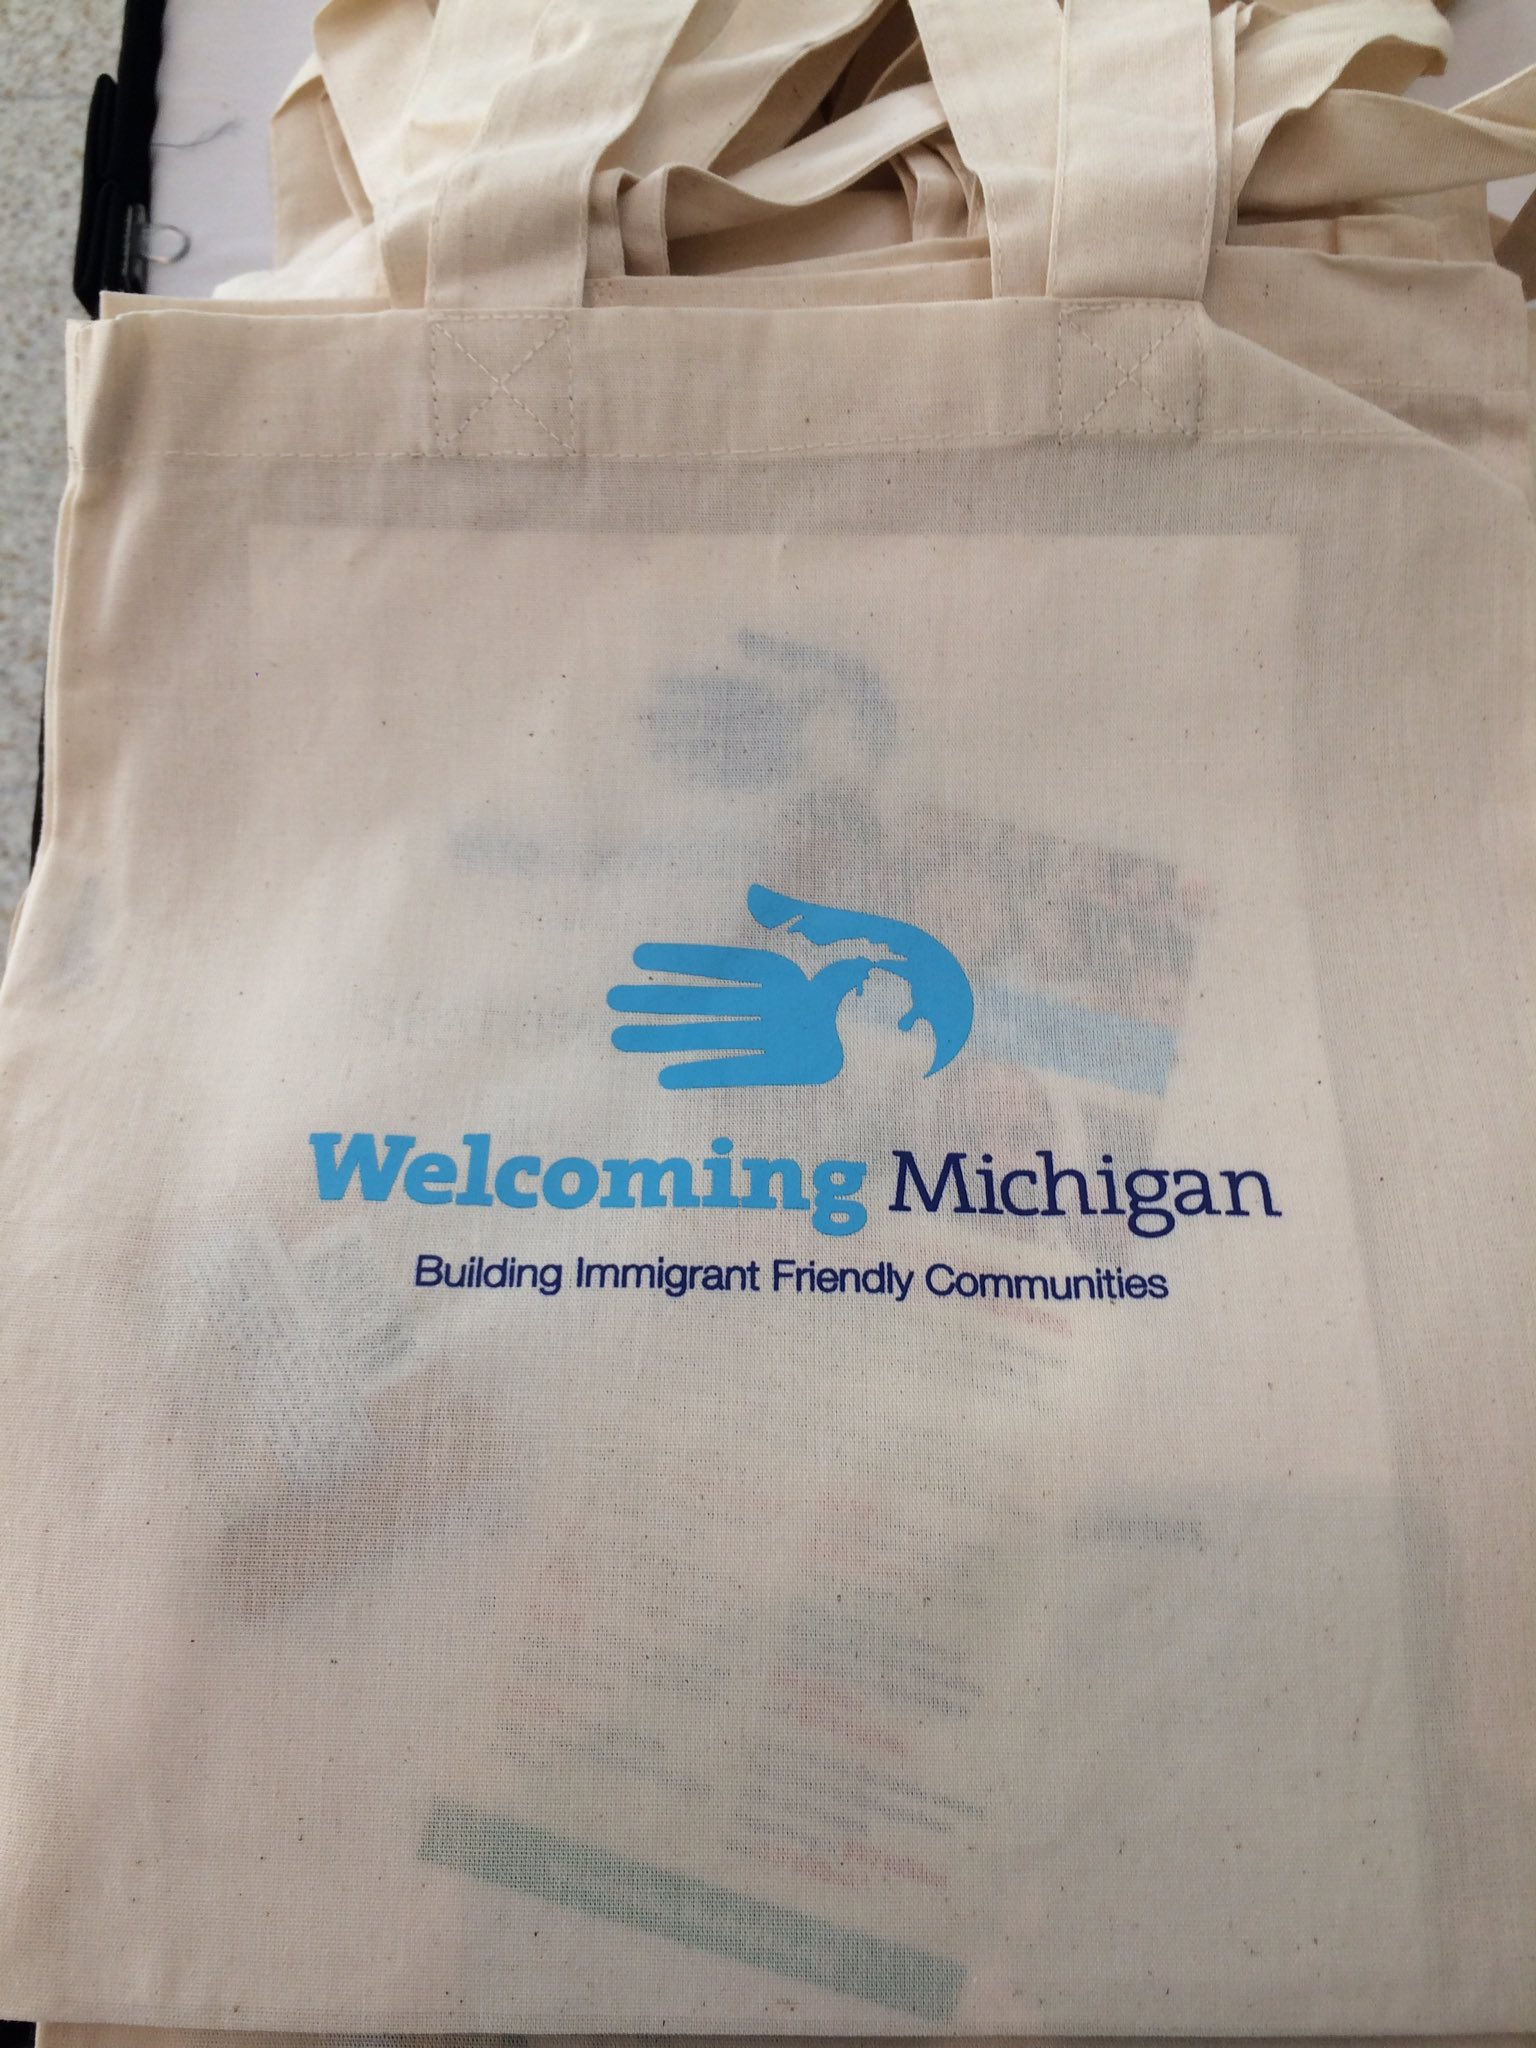 Excited to be @Welcoming_MI today for their third statewide convening to talk about equity and #WeTooSingAmerica. https://t.co/XNGH5GpyuA